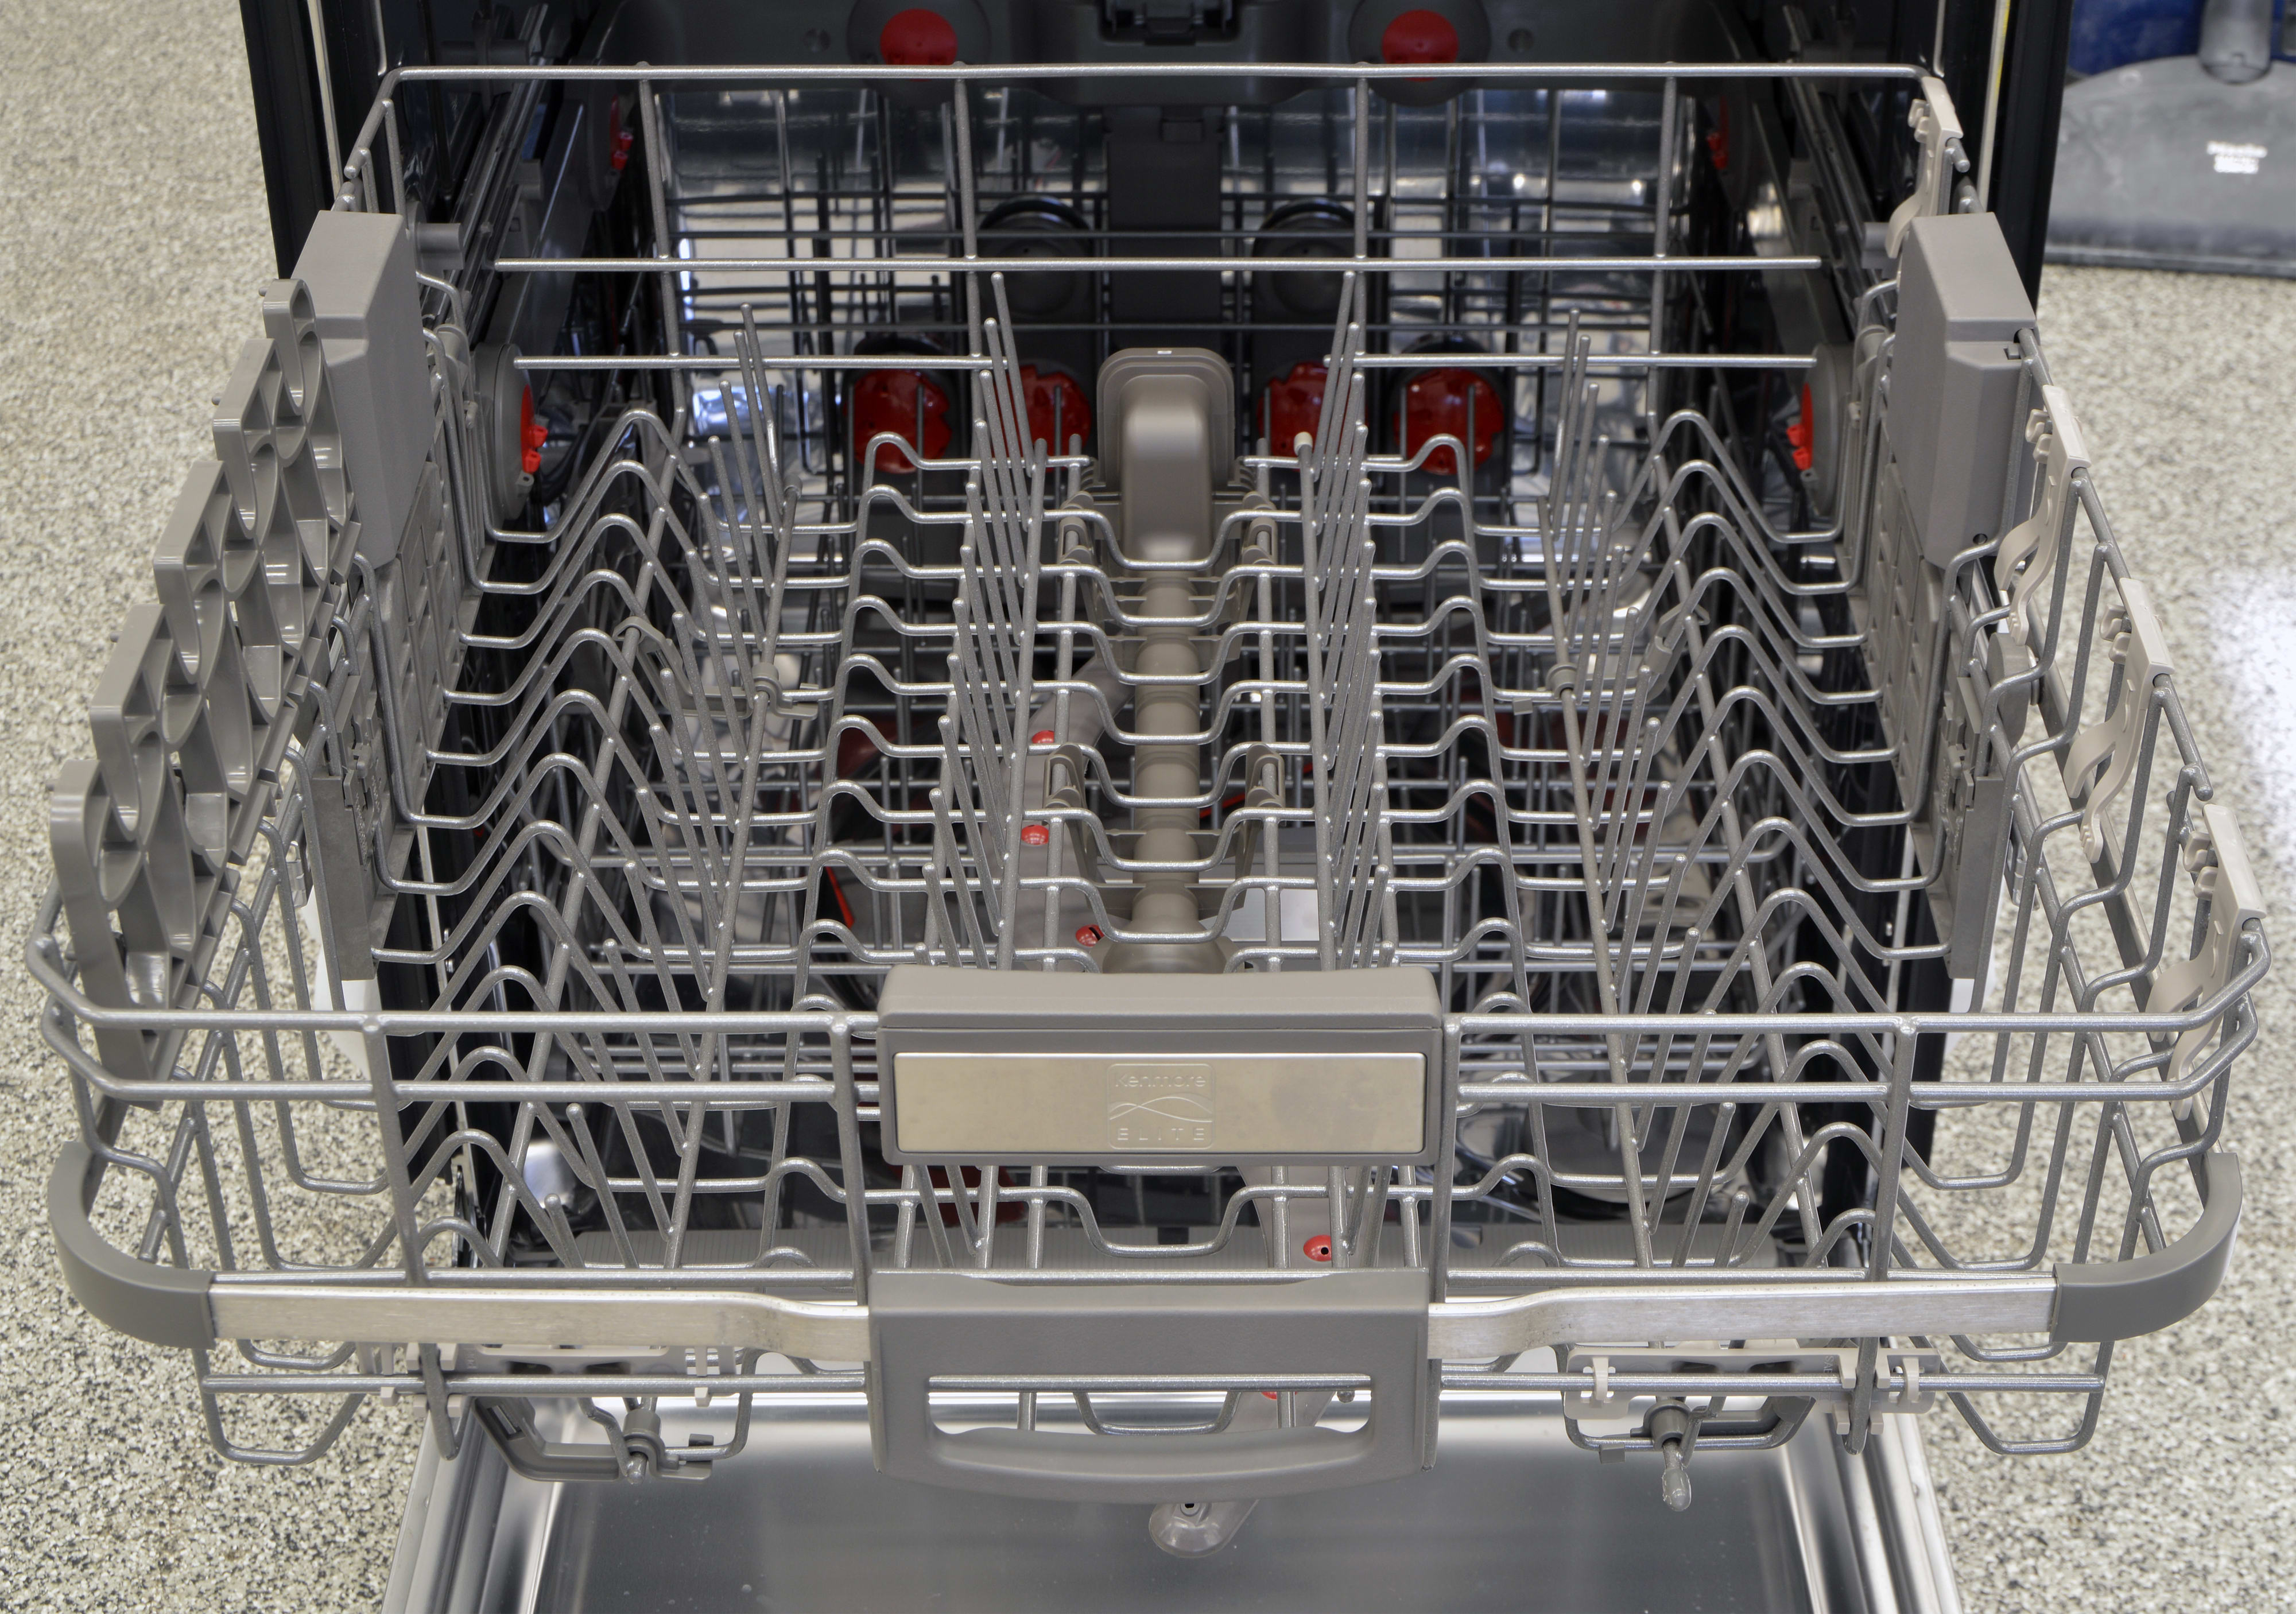 Kenmore Elite 14833 Dishwasher Review Reviewed Com